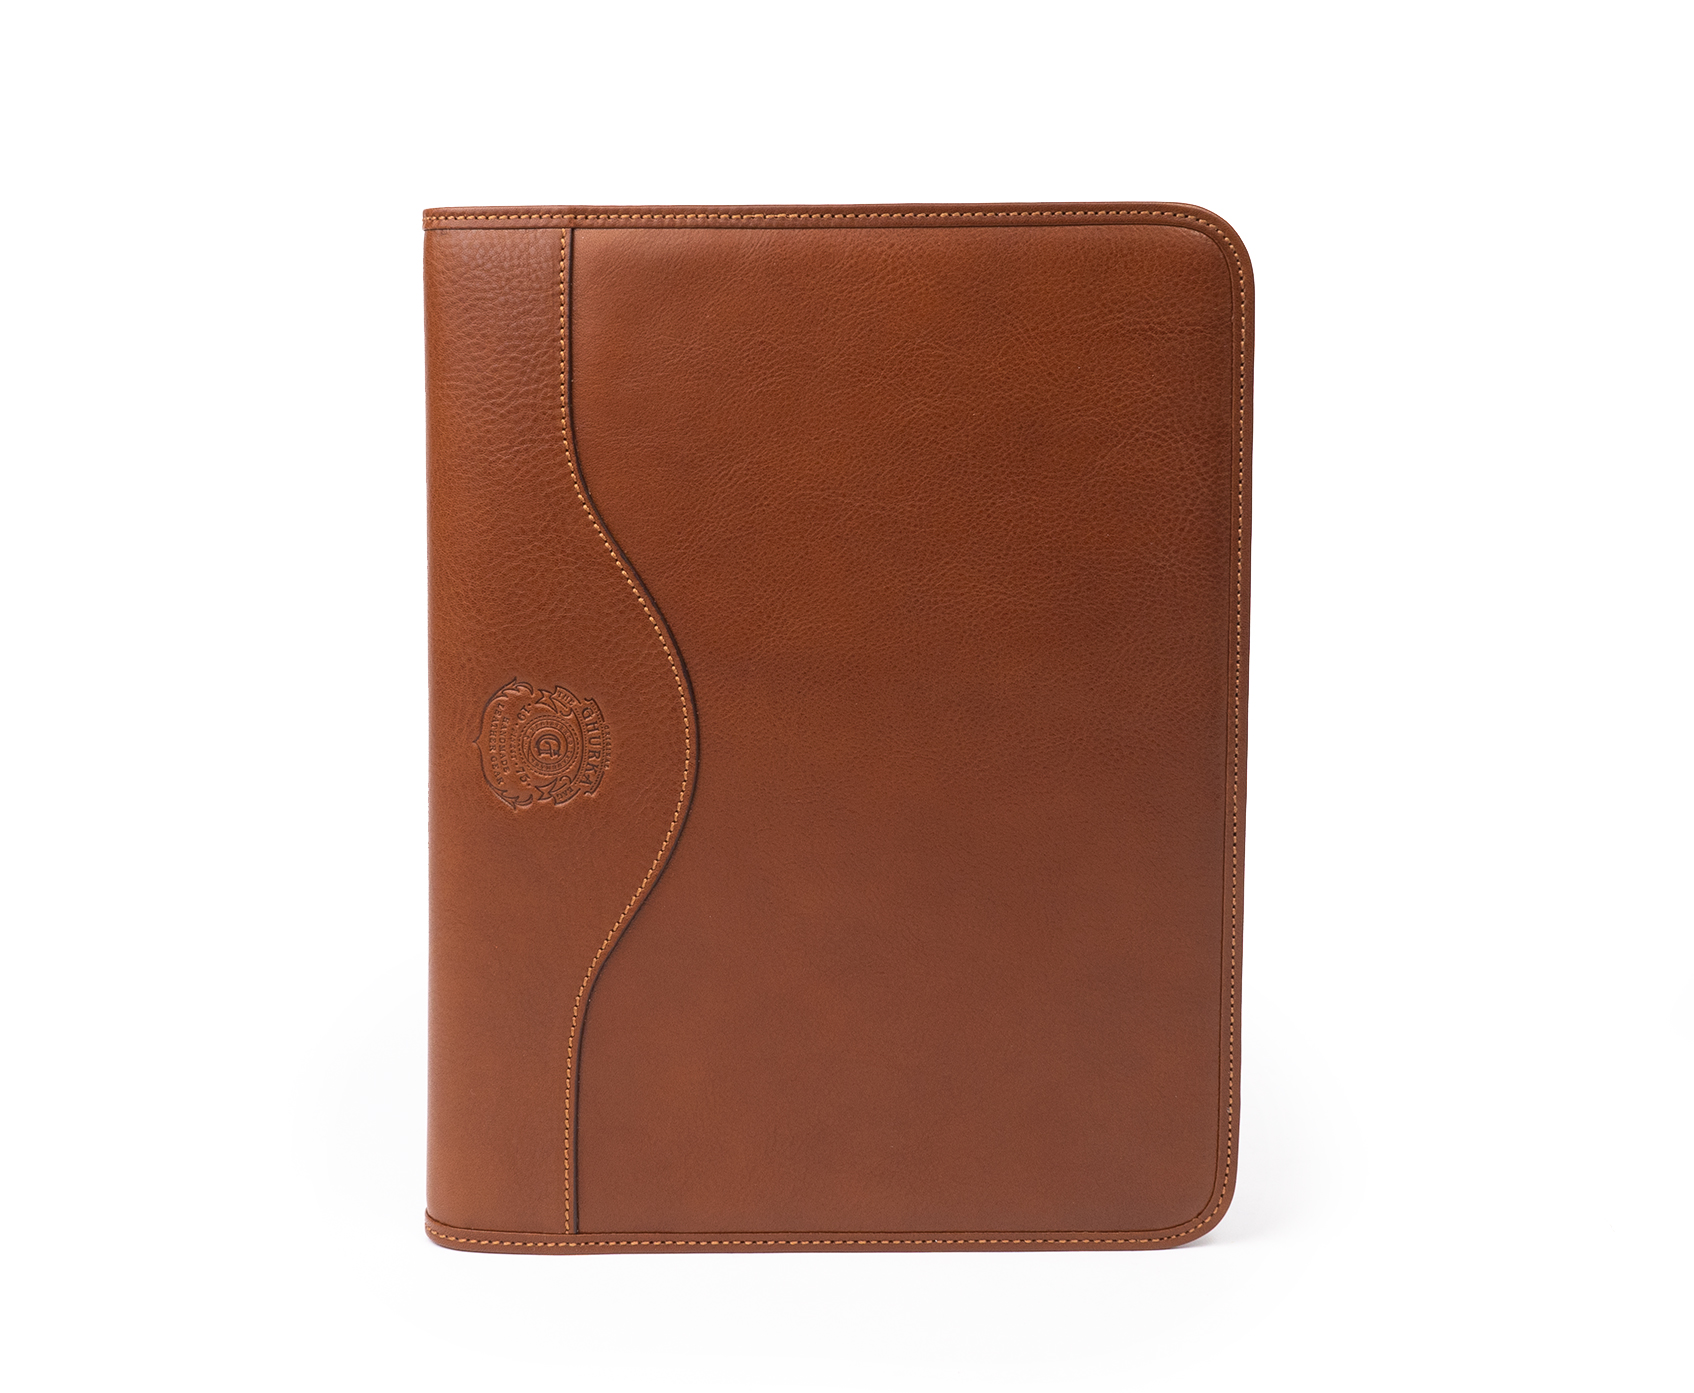 LARGE NOTEBOOK COVER | $295